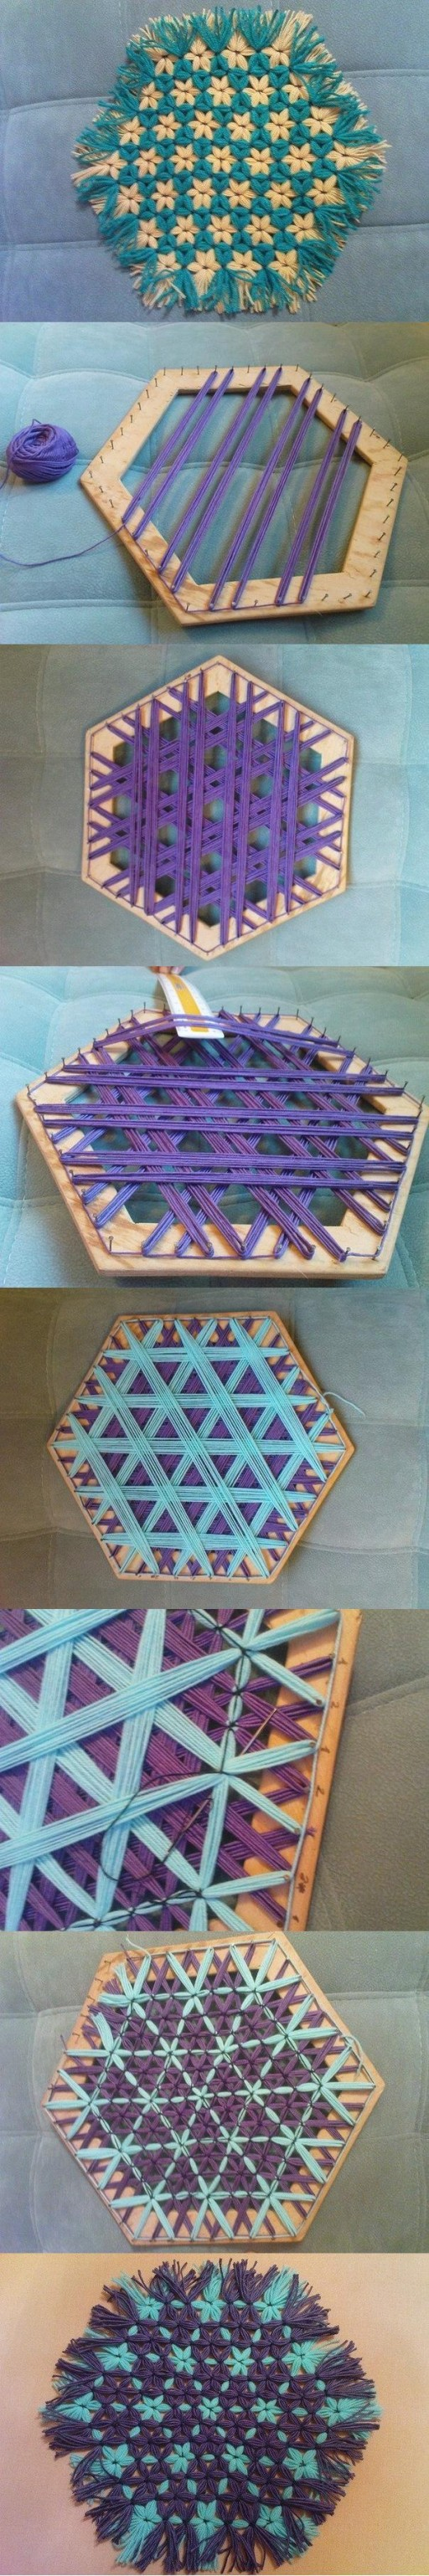 How to make Beautiful Hexagonal Coaster step by step DIY tutorial instructions